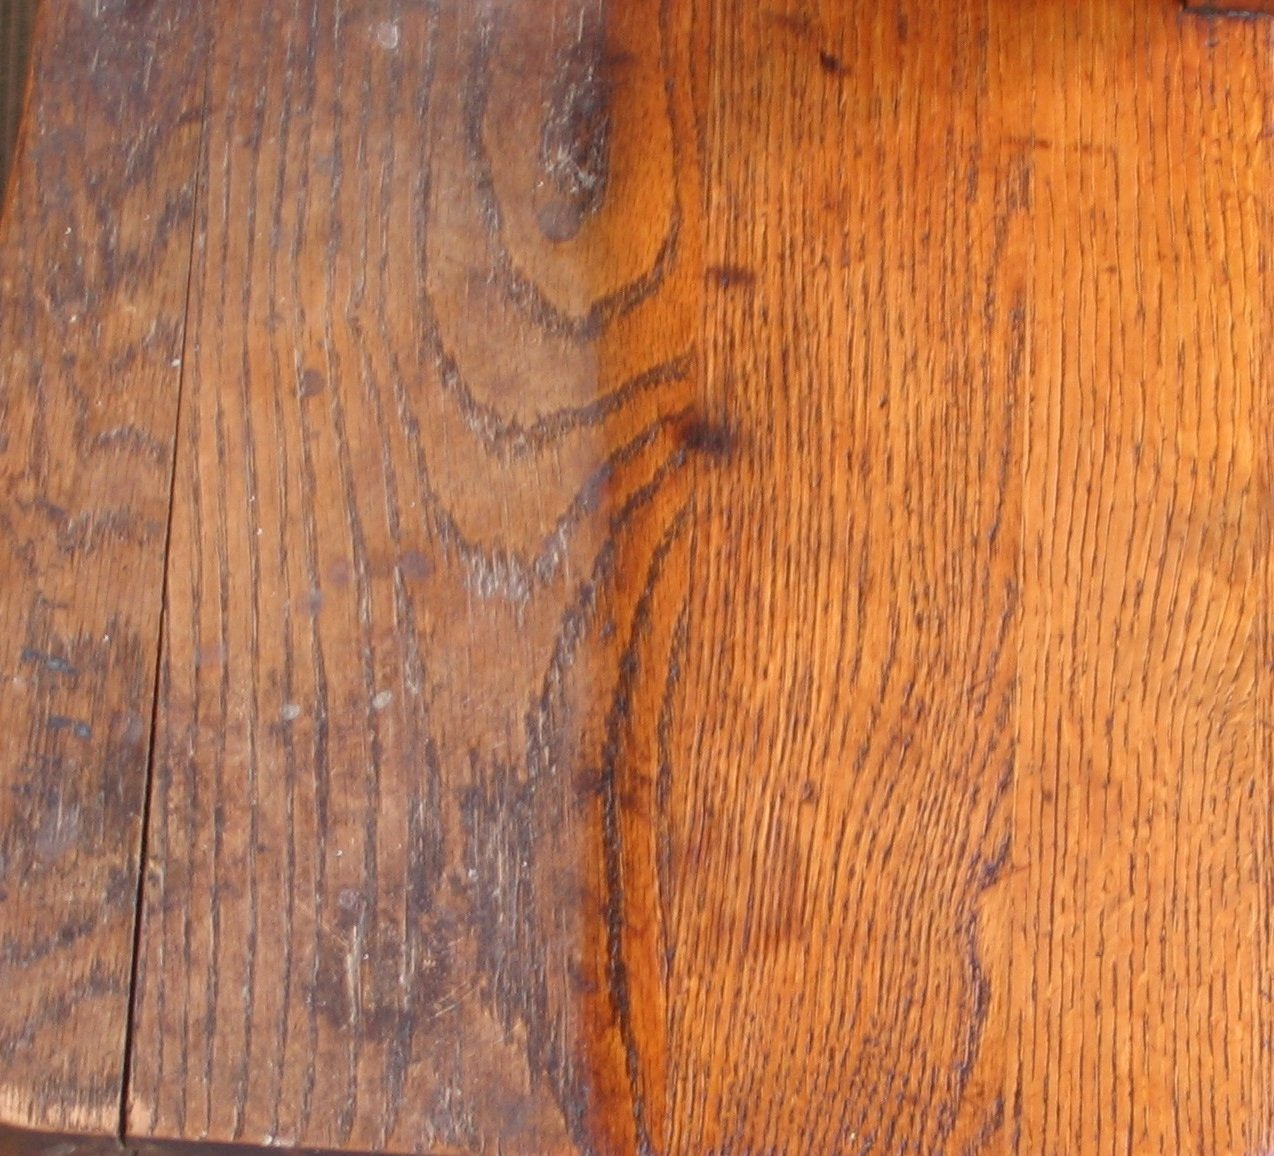 Complete Wood Restoration Kit, Wood Floor Restorer, Orange Oil Cleaner 32 oz, Beeswax Furniture Polish 16 oz, Restore A Finish 16 oz, Cover Scratches and Blemishes (Walnut) by Touch Of Oranges (Image #5)